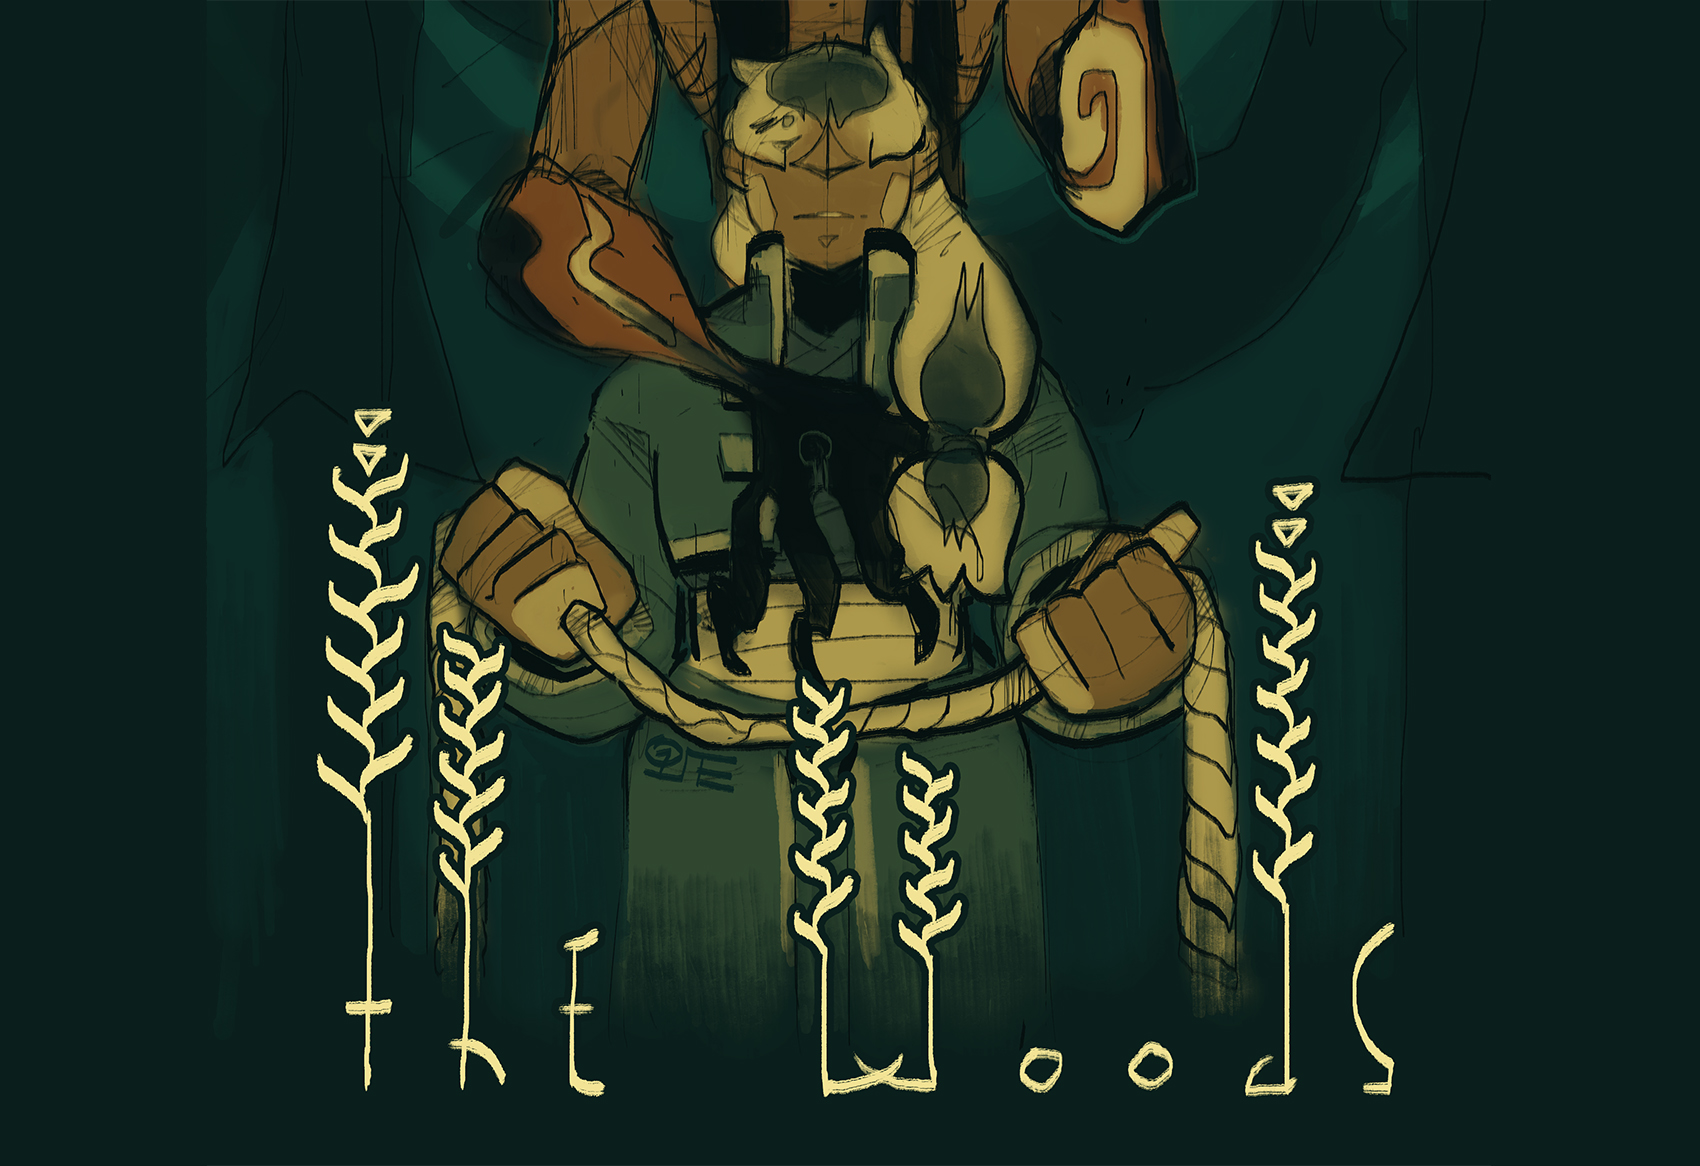 Cover art for The Woods; It depicts the dour old priest Makame, in the arms of the great beast of all men.